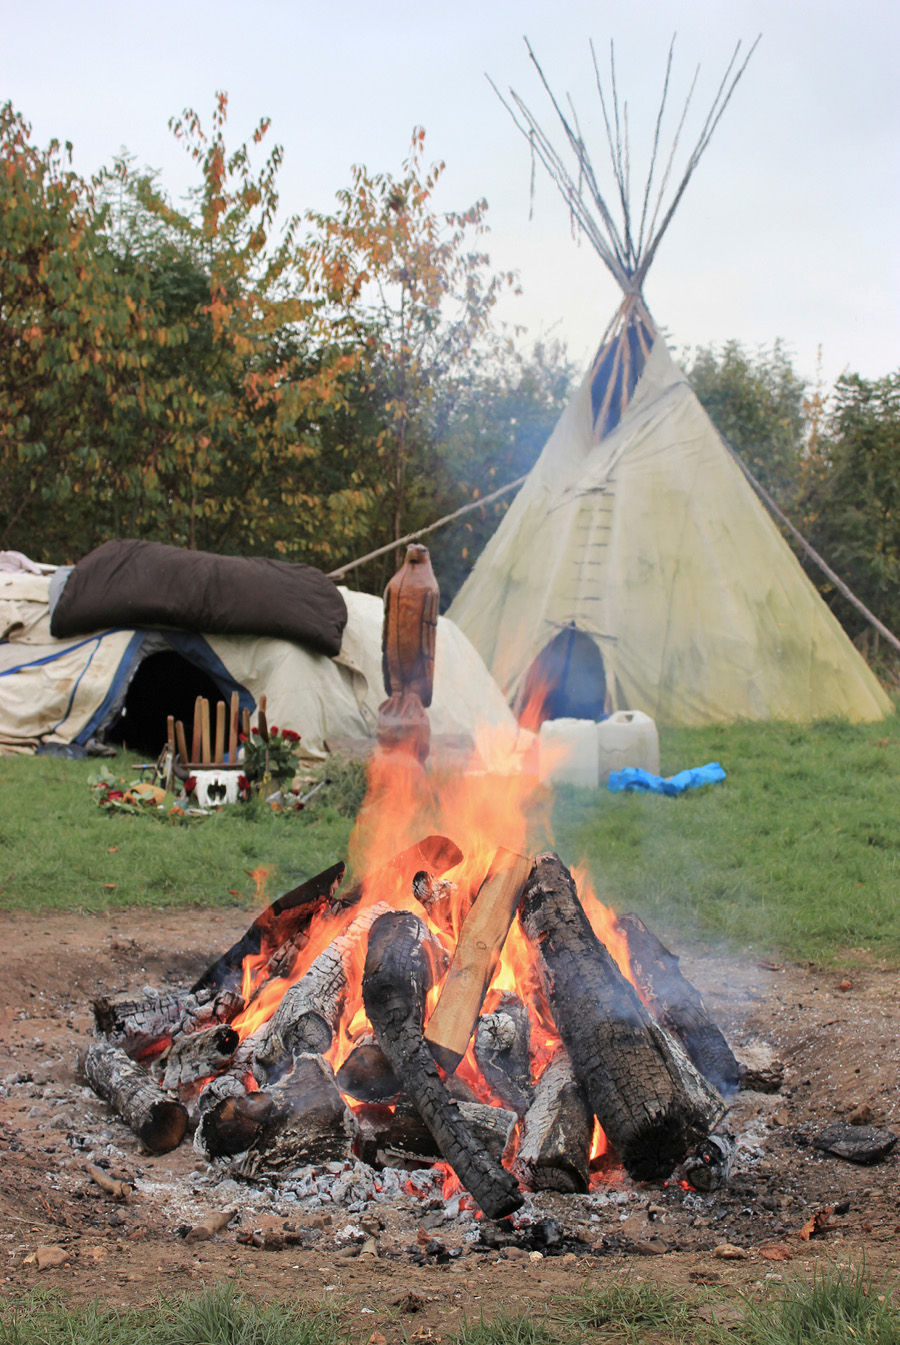 reparing for the sweat lodge ceremony at the Wind Spirit community in Oxfordshire